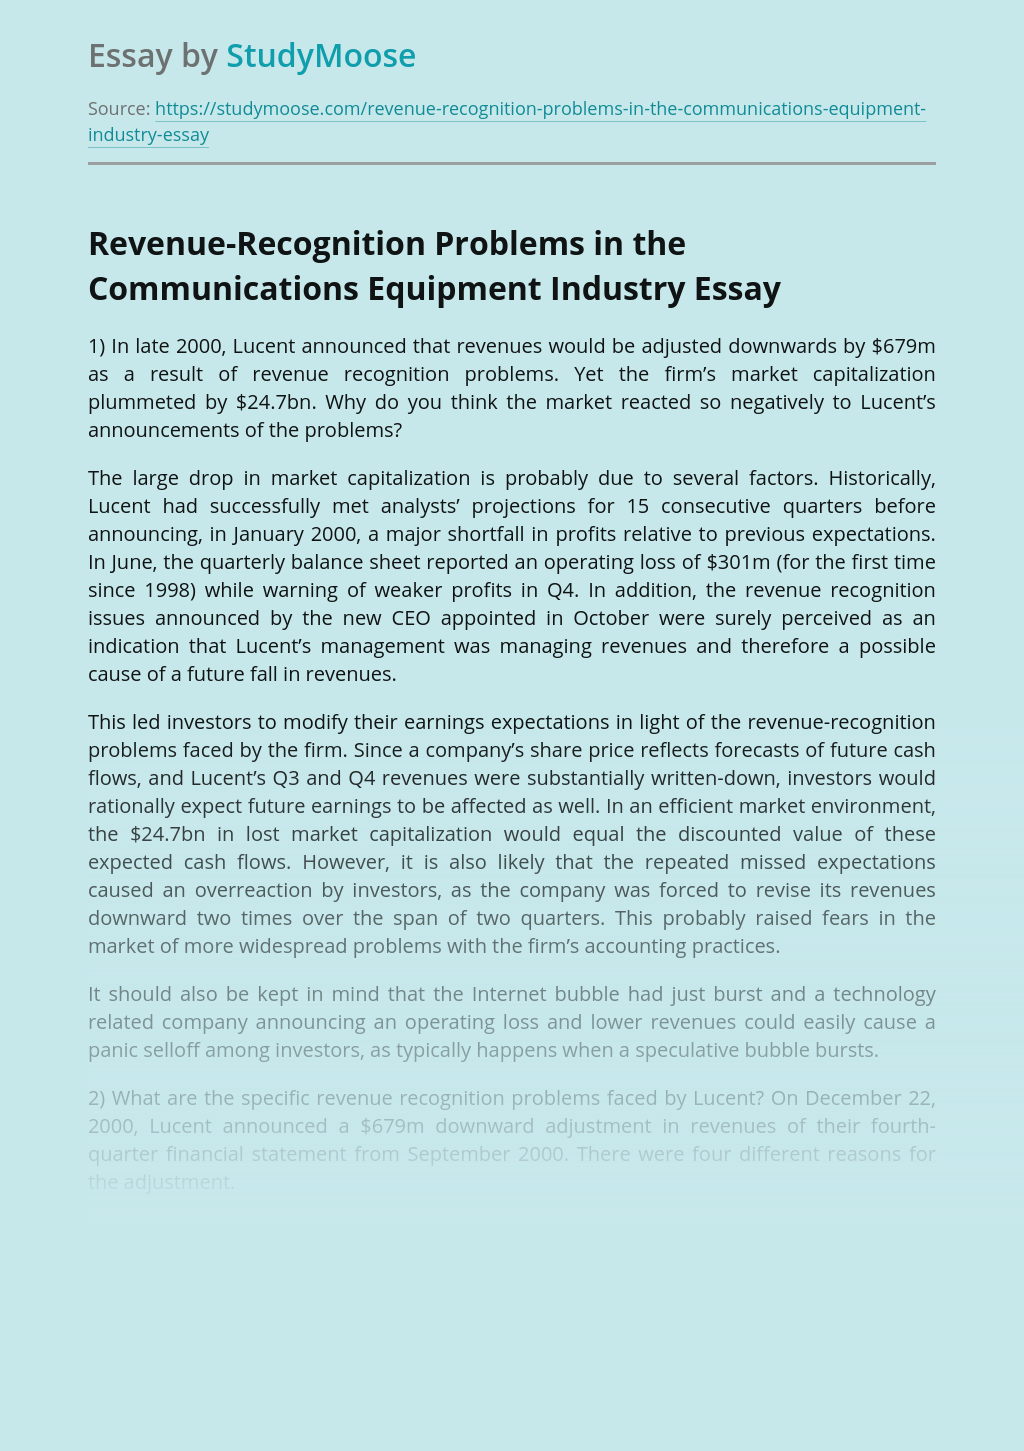 Revenue-Recognition Problems in the Communications Equipment Industry